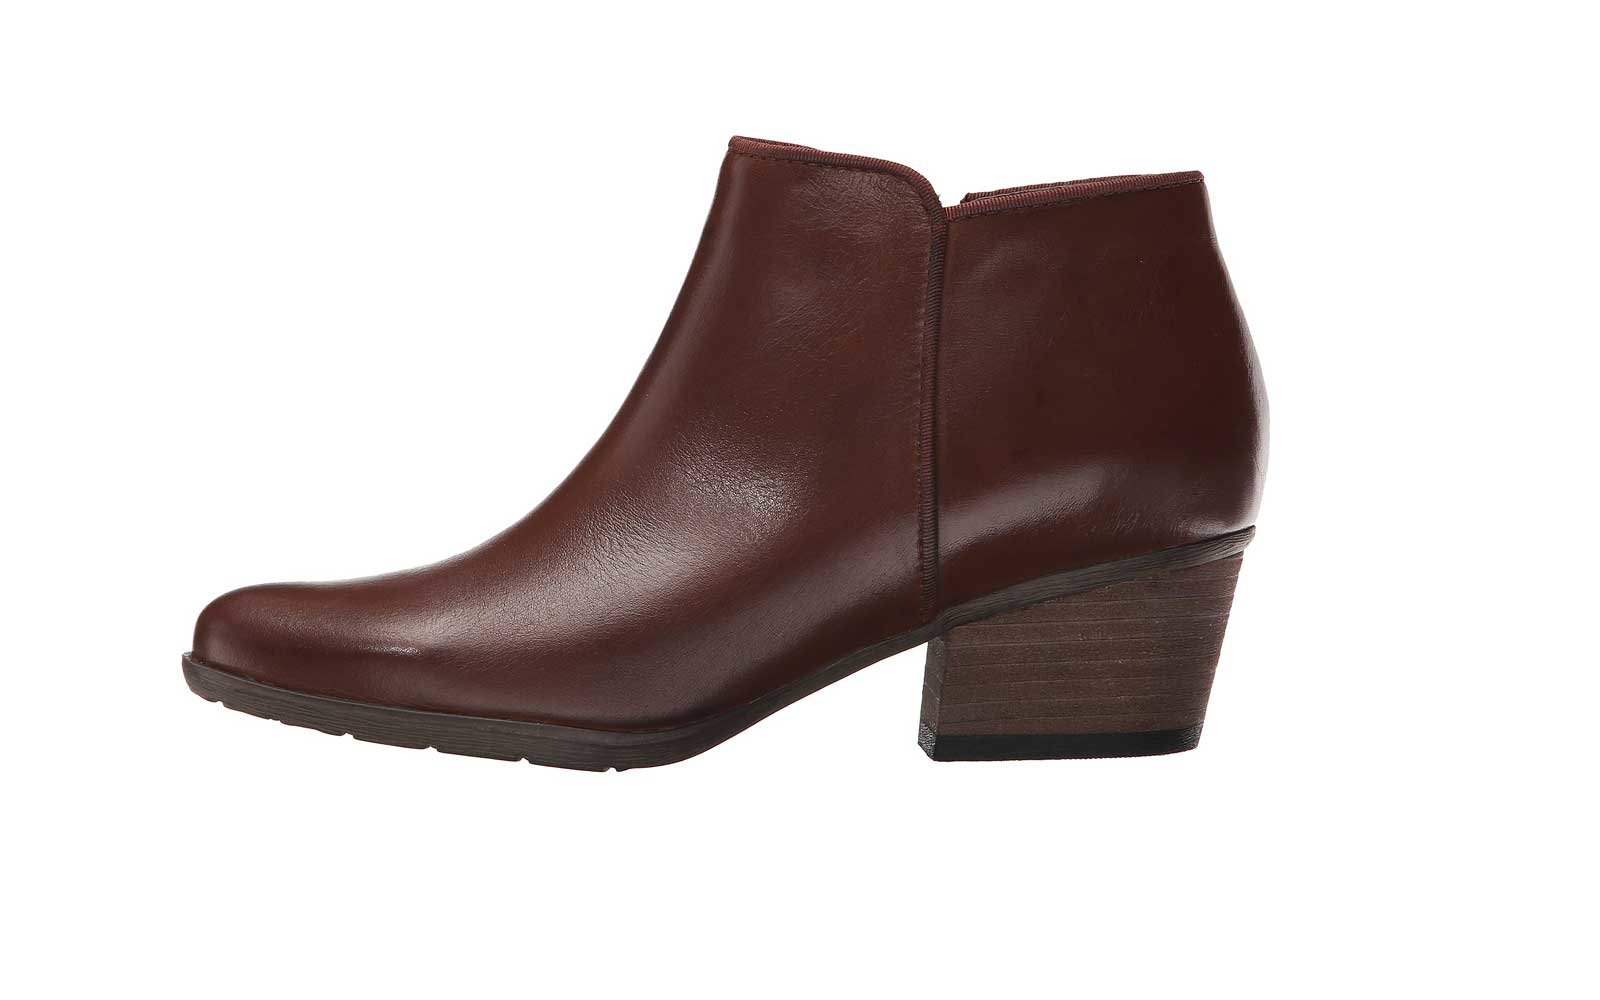 Simple (but Smart!) Heeled Booties